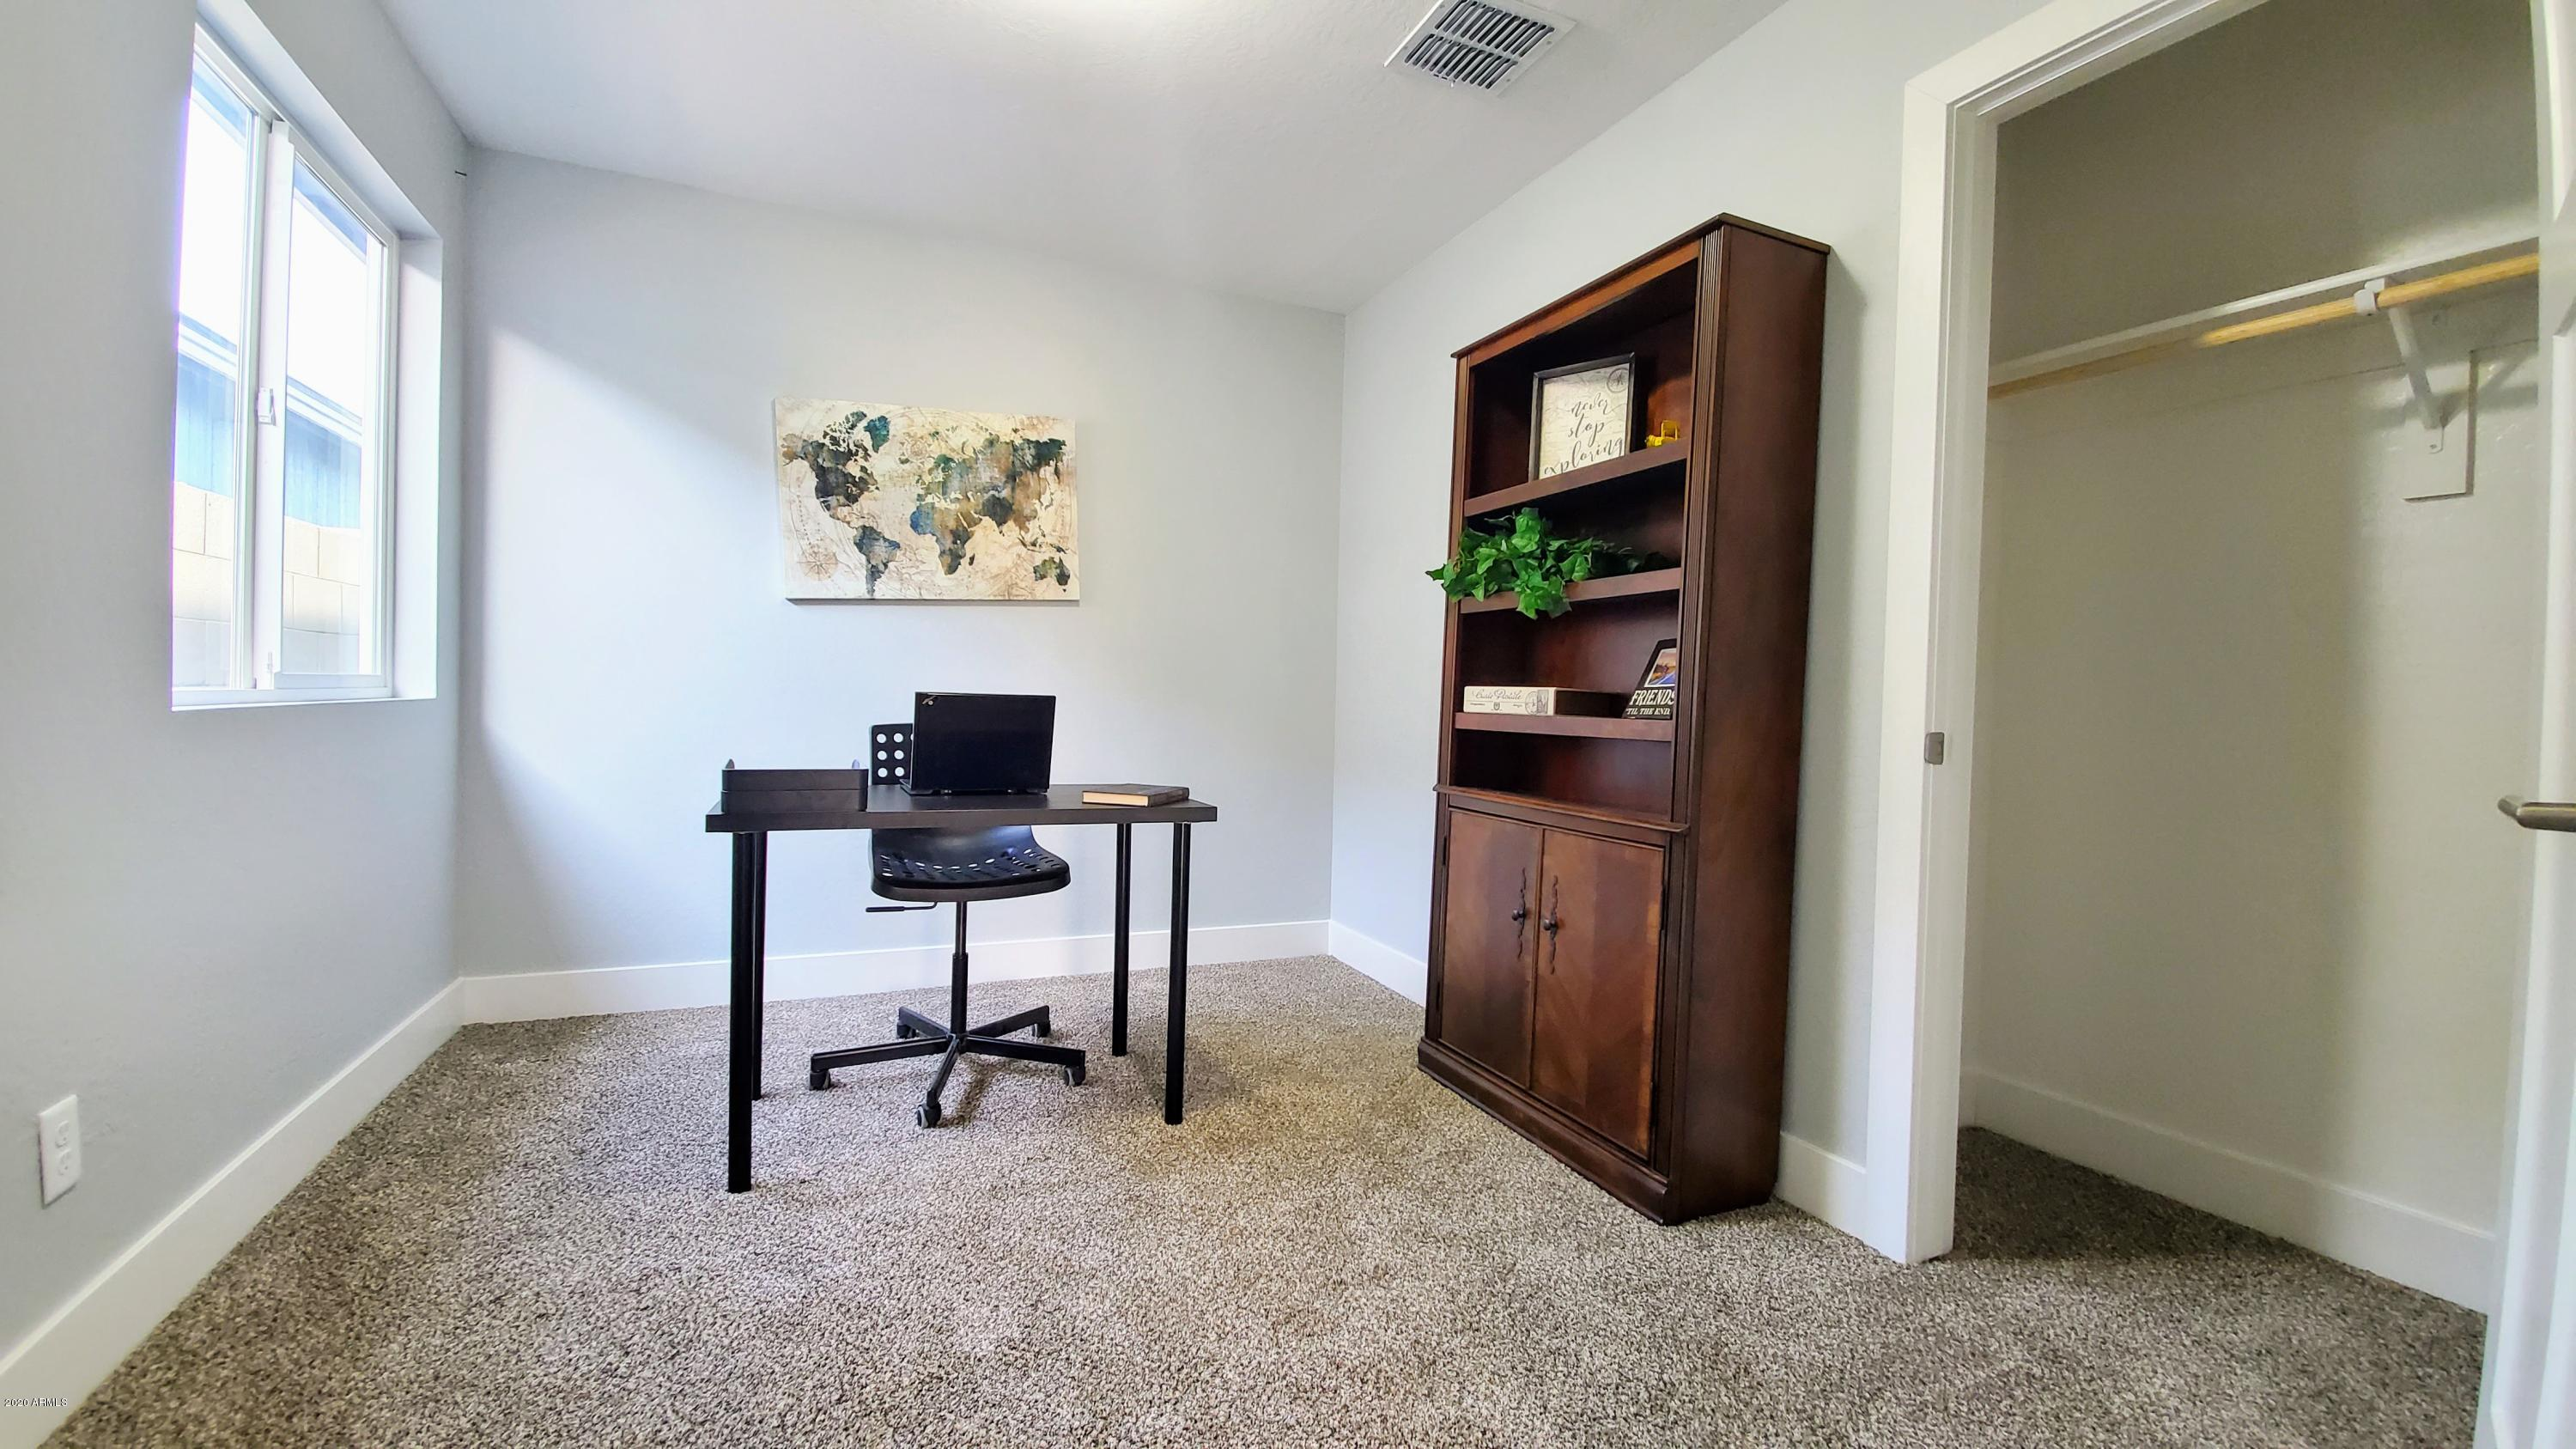 5118 S 23RD Drive, Phoenix, Arizona 85041, 4 Bedrooms Bedrooms, ,Residential,For Sale,5118 S 23RD Drive,6060792